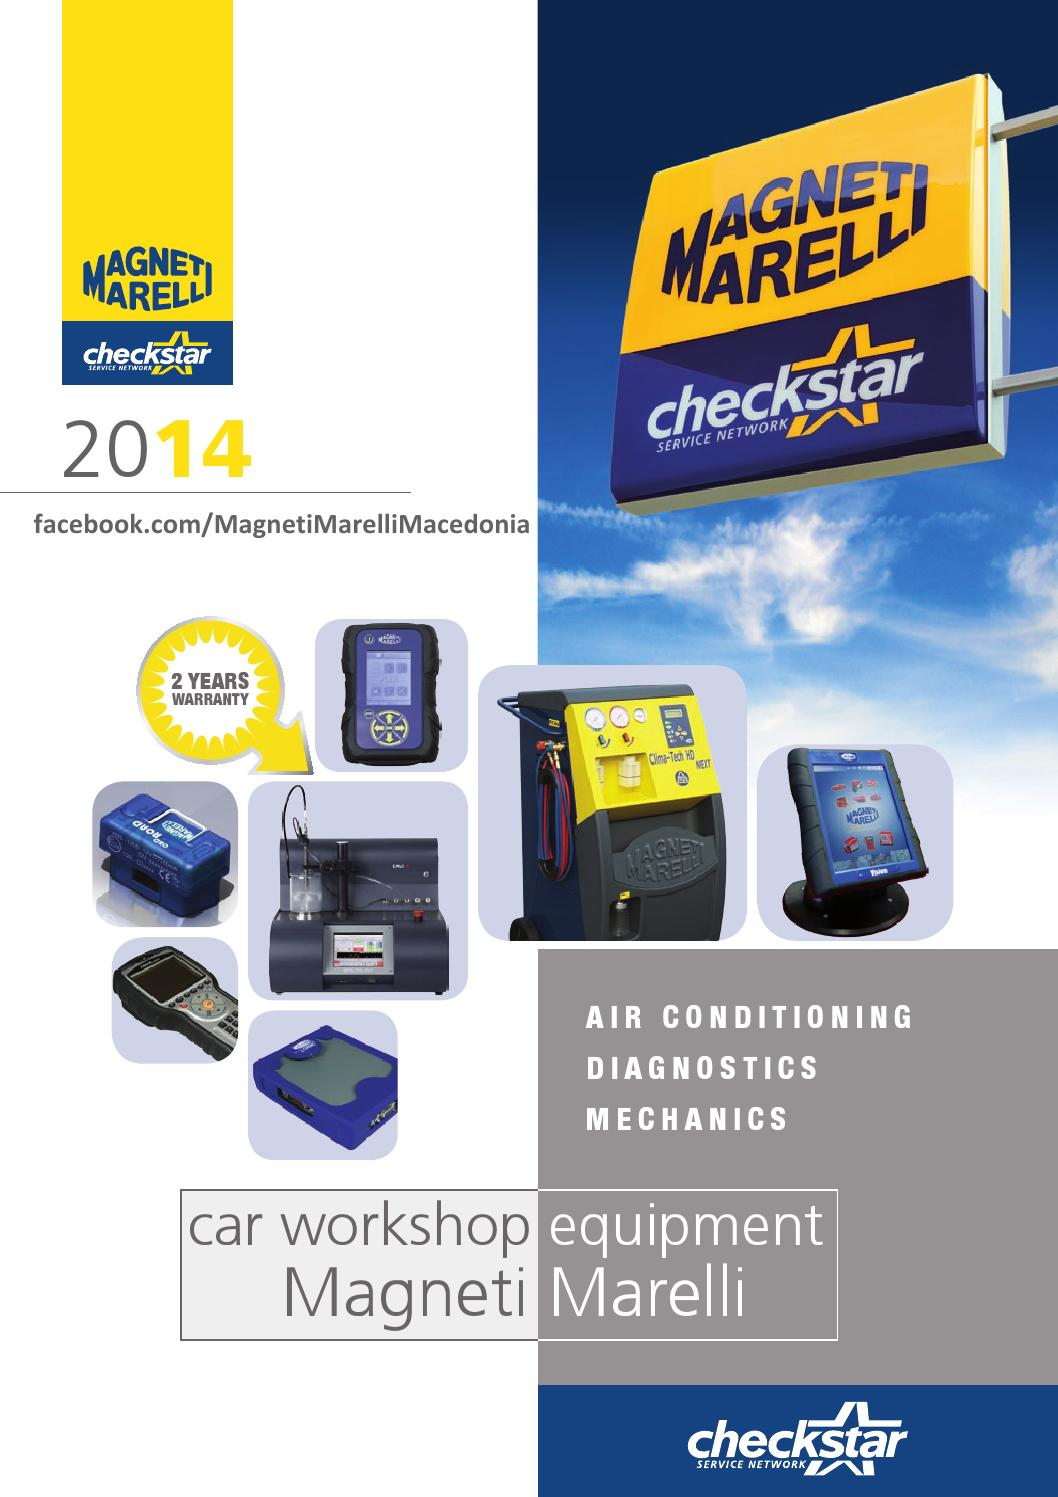 magneti marelli workshop equipment catalog 2014 en by. Black Bedroom Furniture Sets. Home Design Ideas